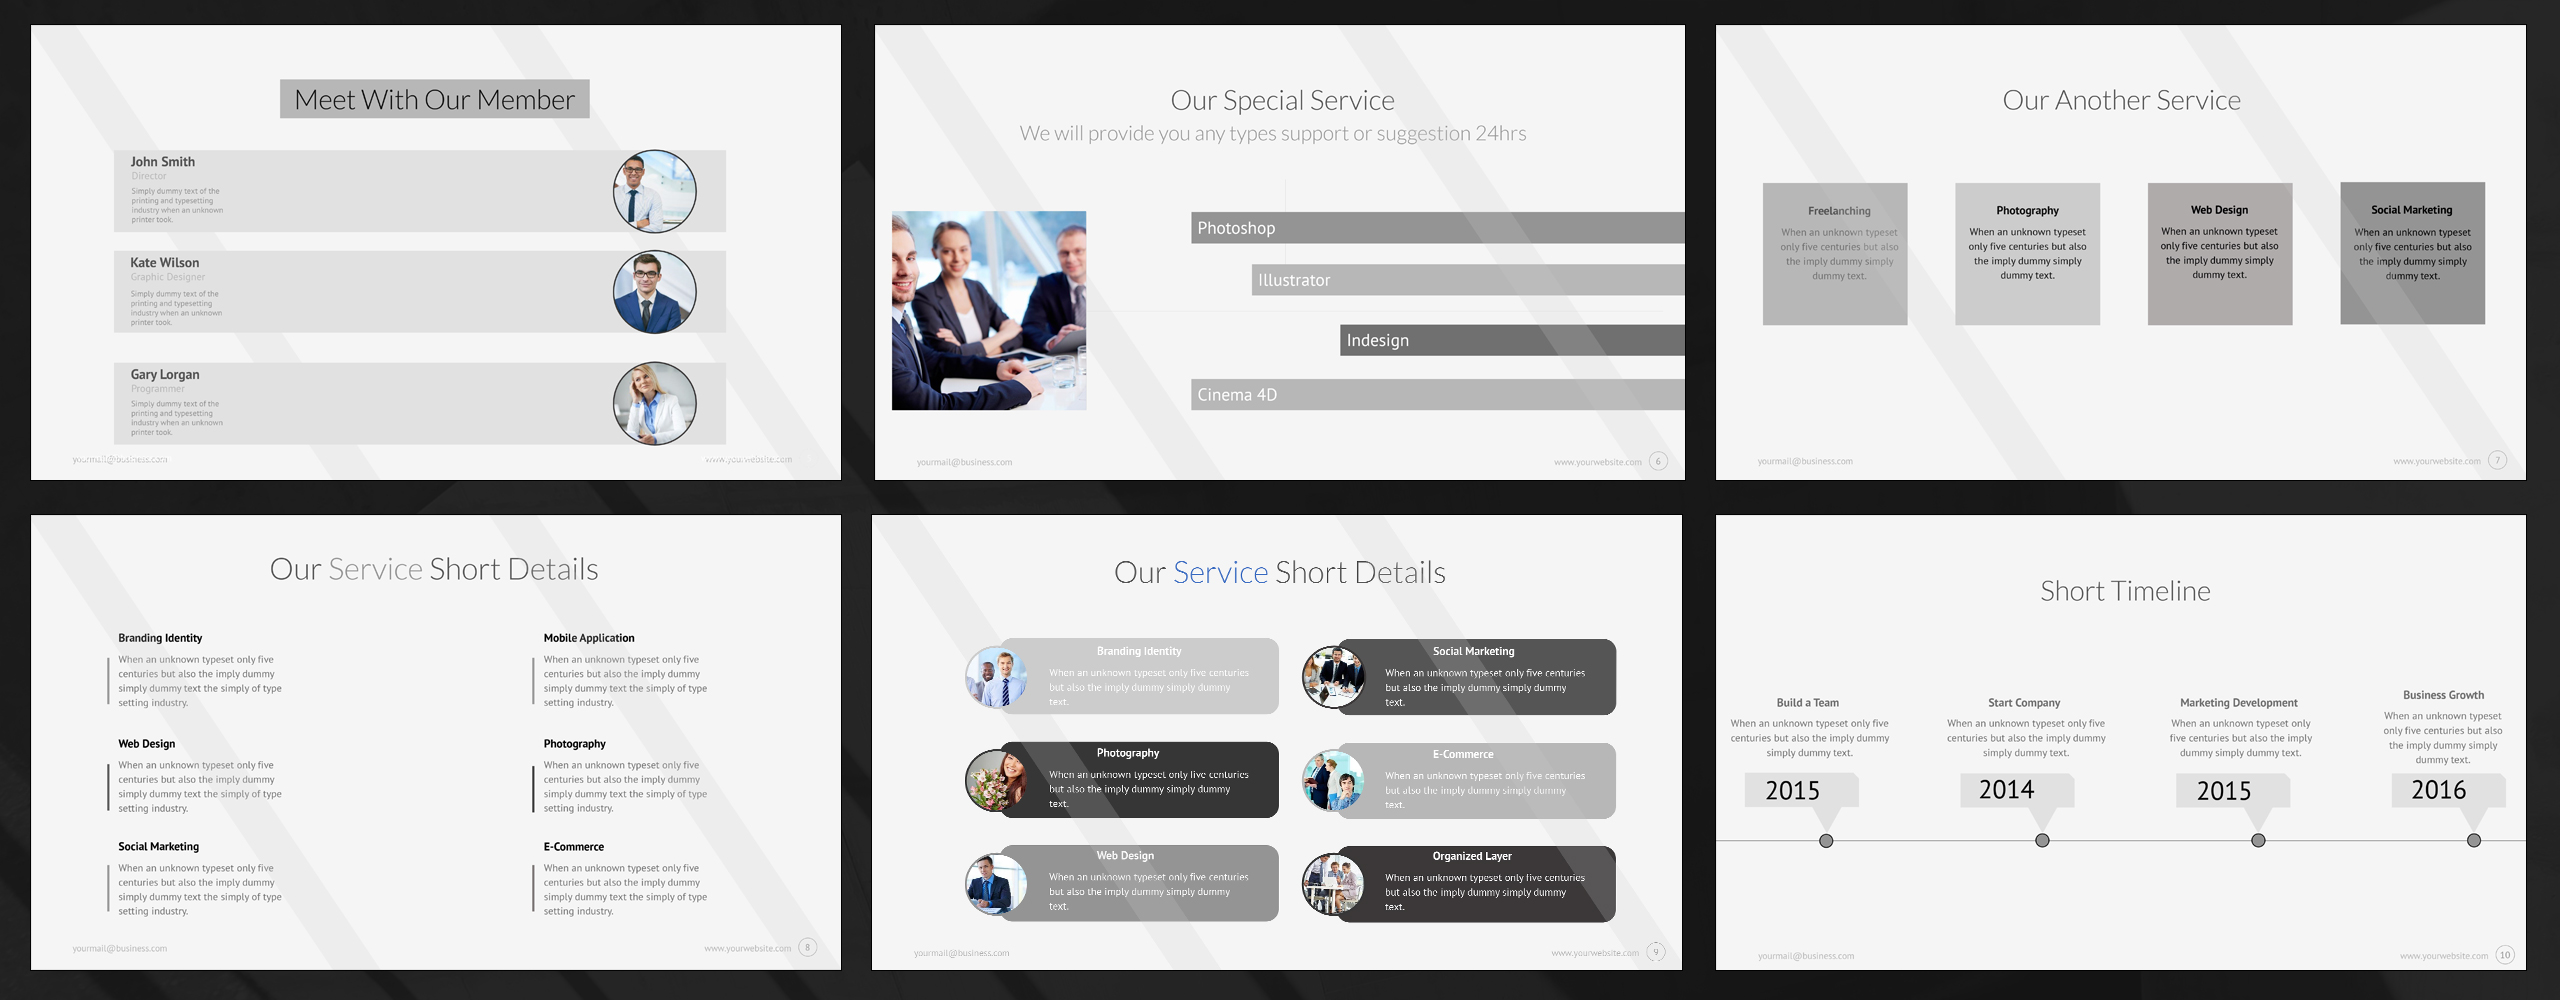 it powerpoint template #65443, Modern powerpoint